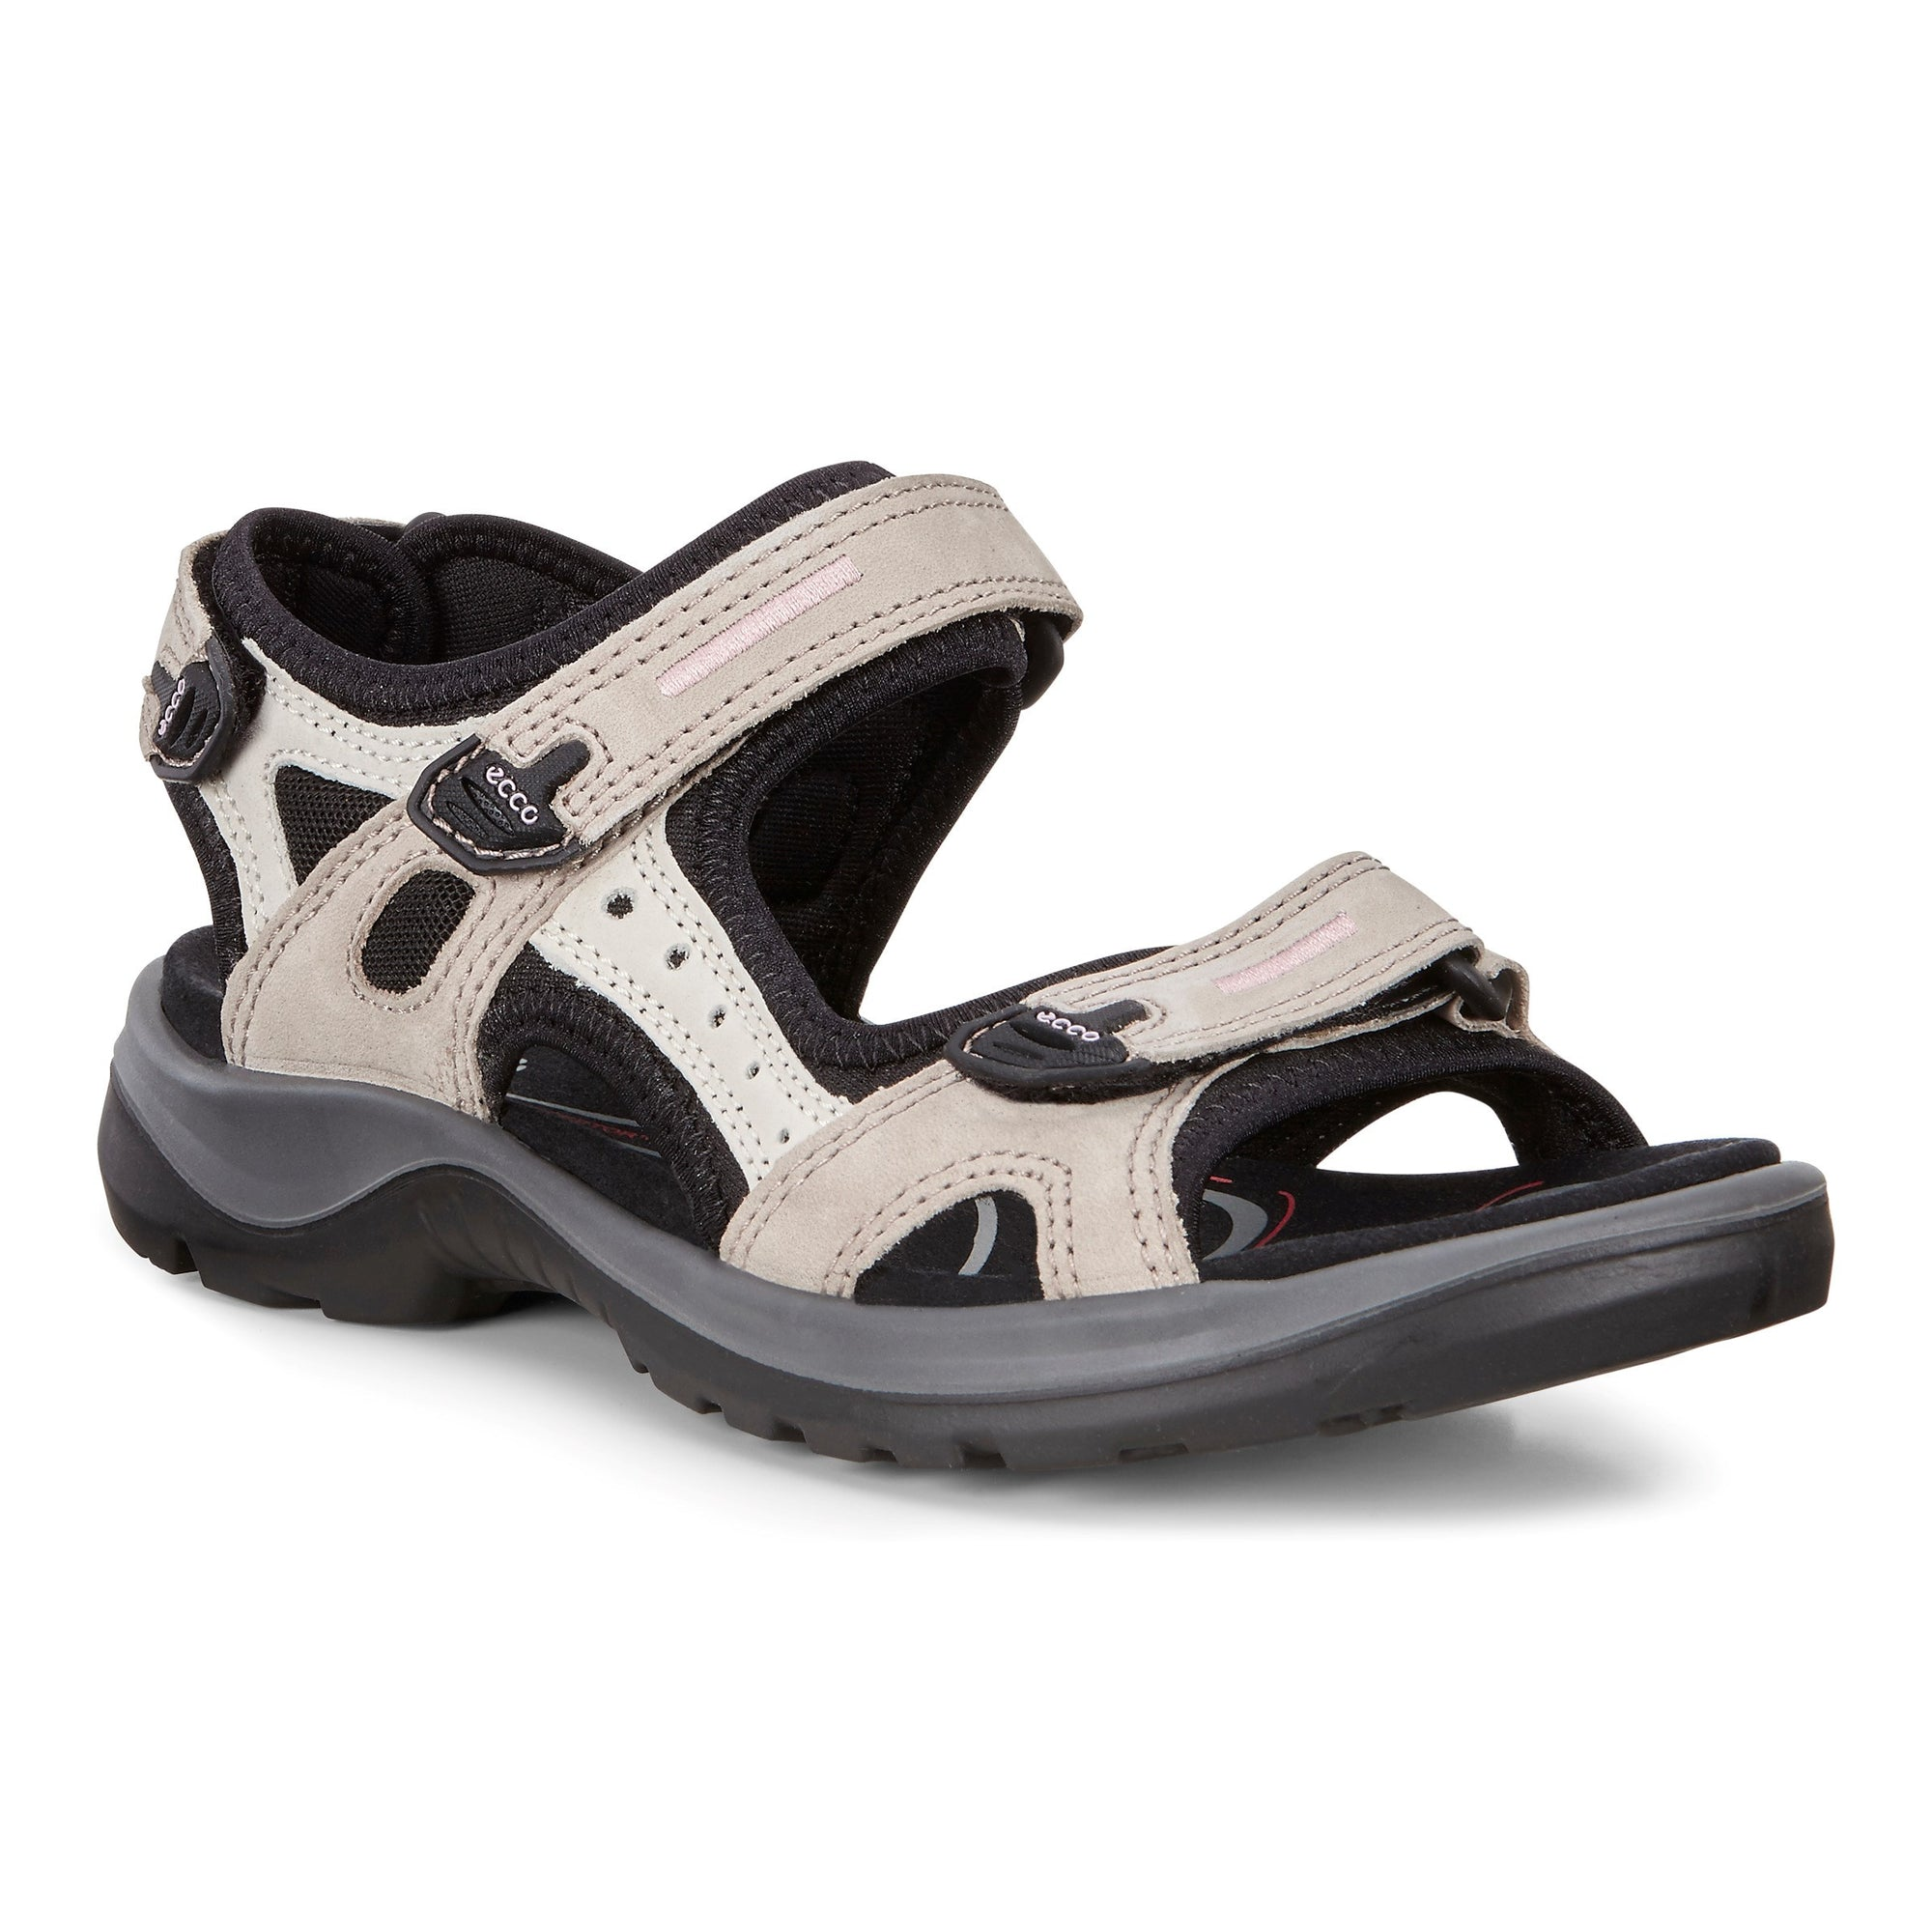 Ecco Yucatan Sandal (W) - Atmosphere/Ice/Black